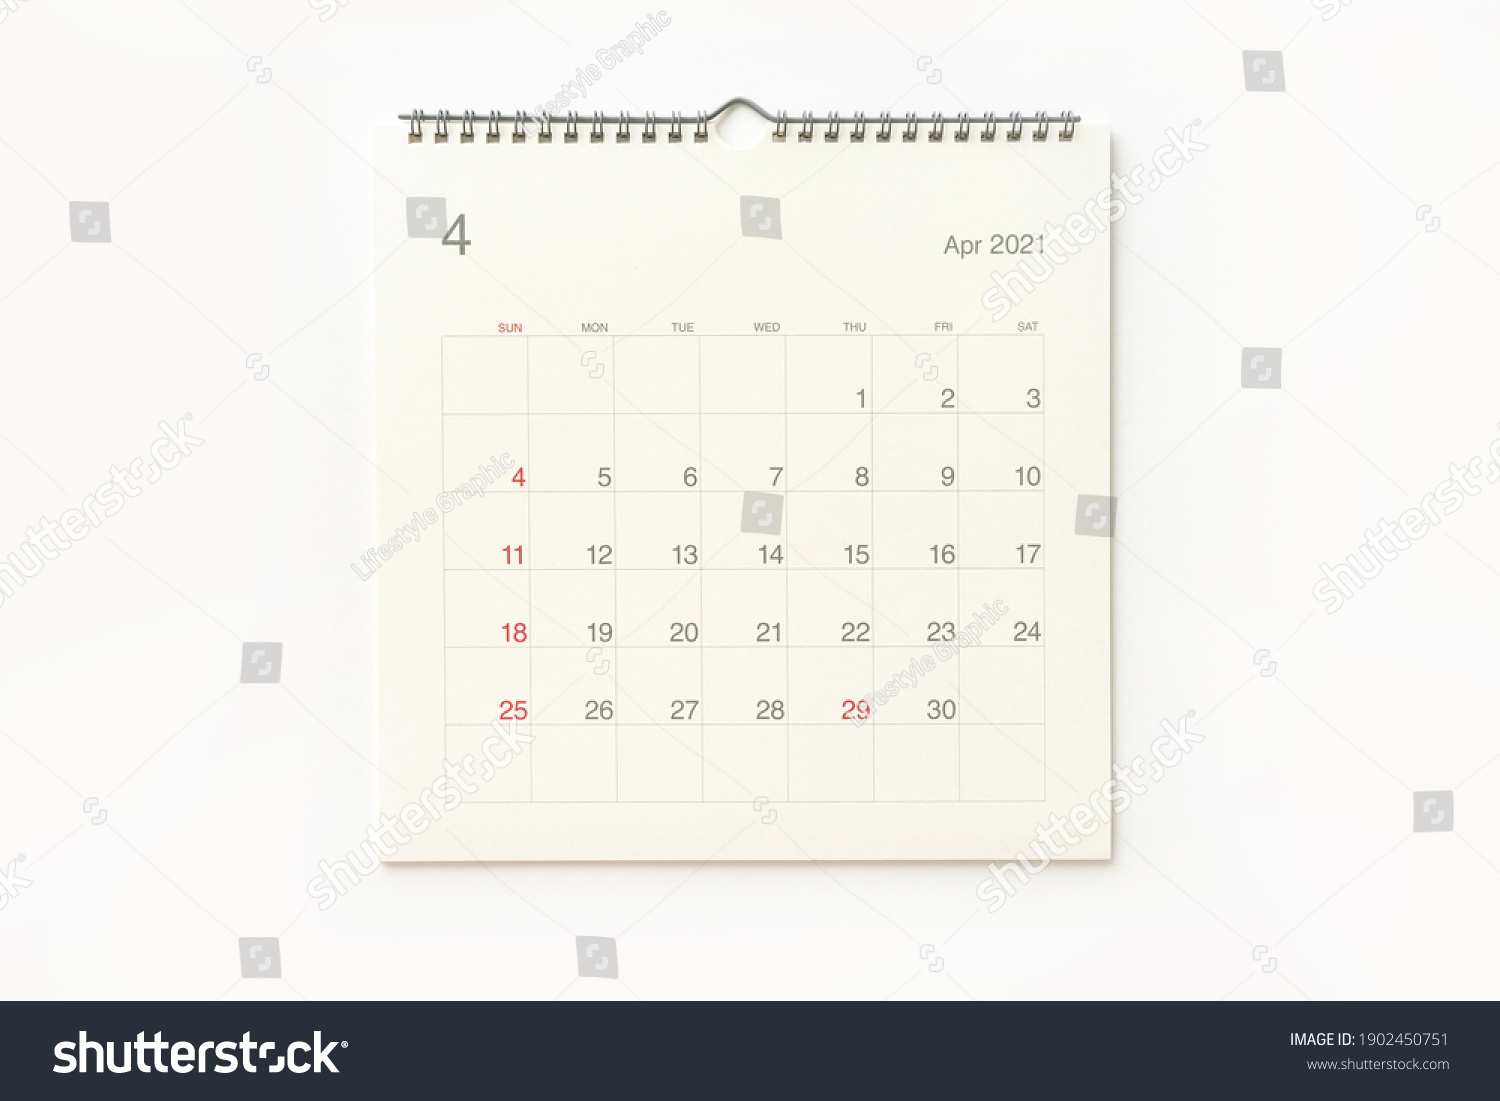 April 2021 calendar page on white background. Calendar background for reminder, business planning, appointment meeting and event. #1902450751